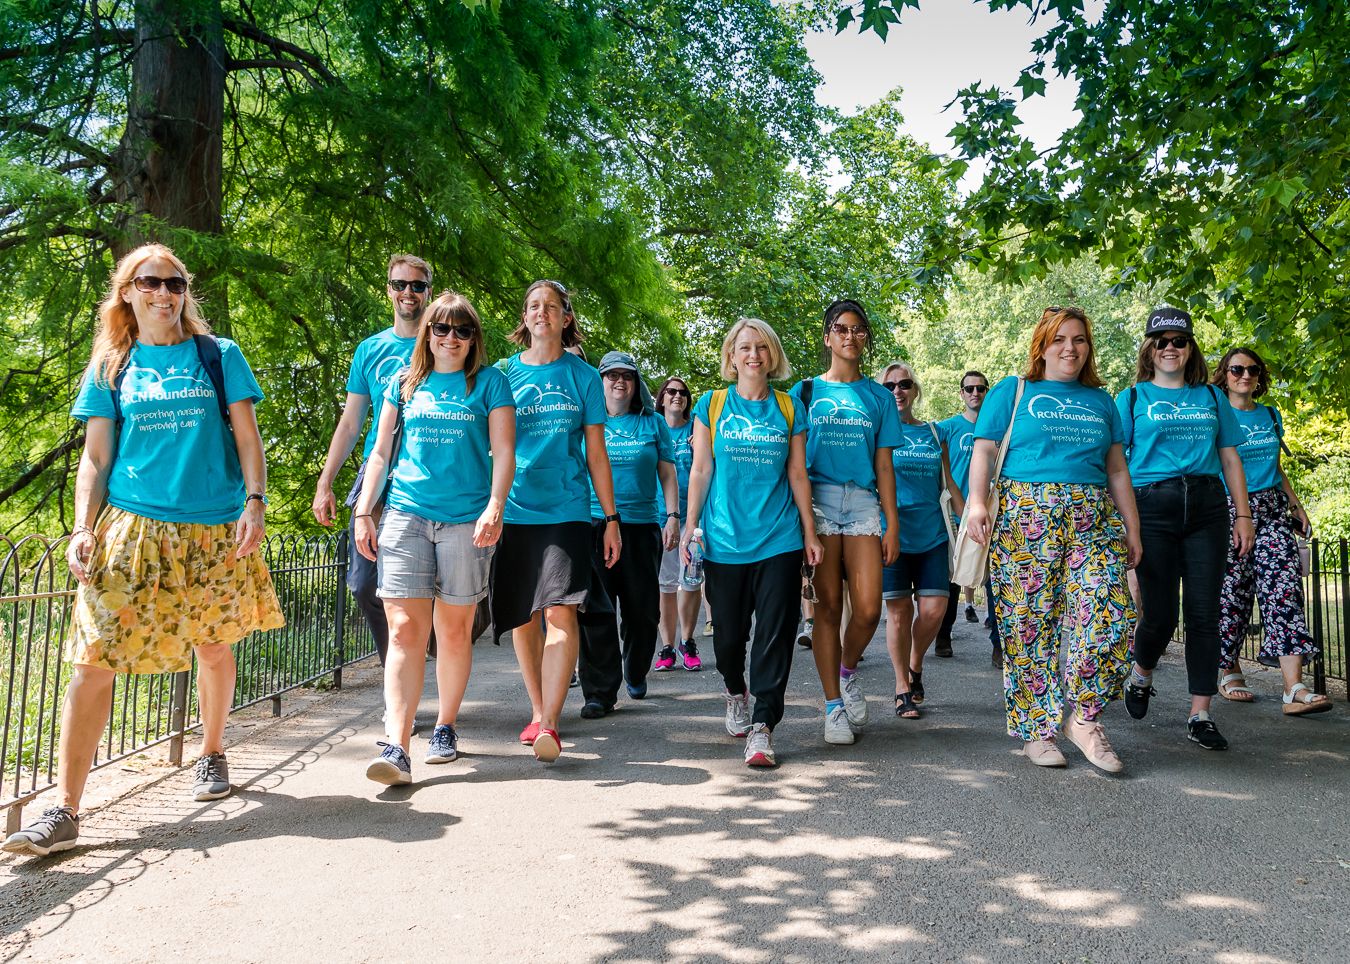 fundraisers walking during an event